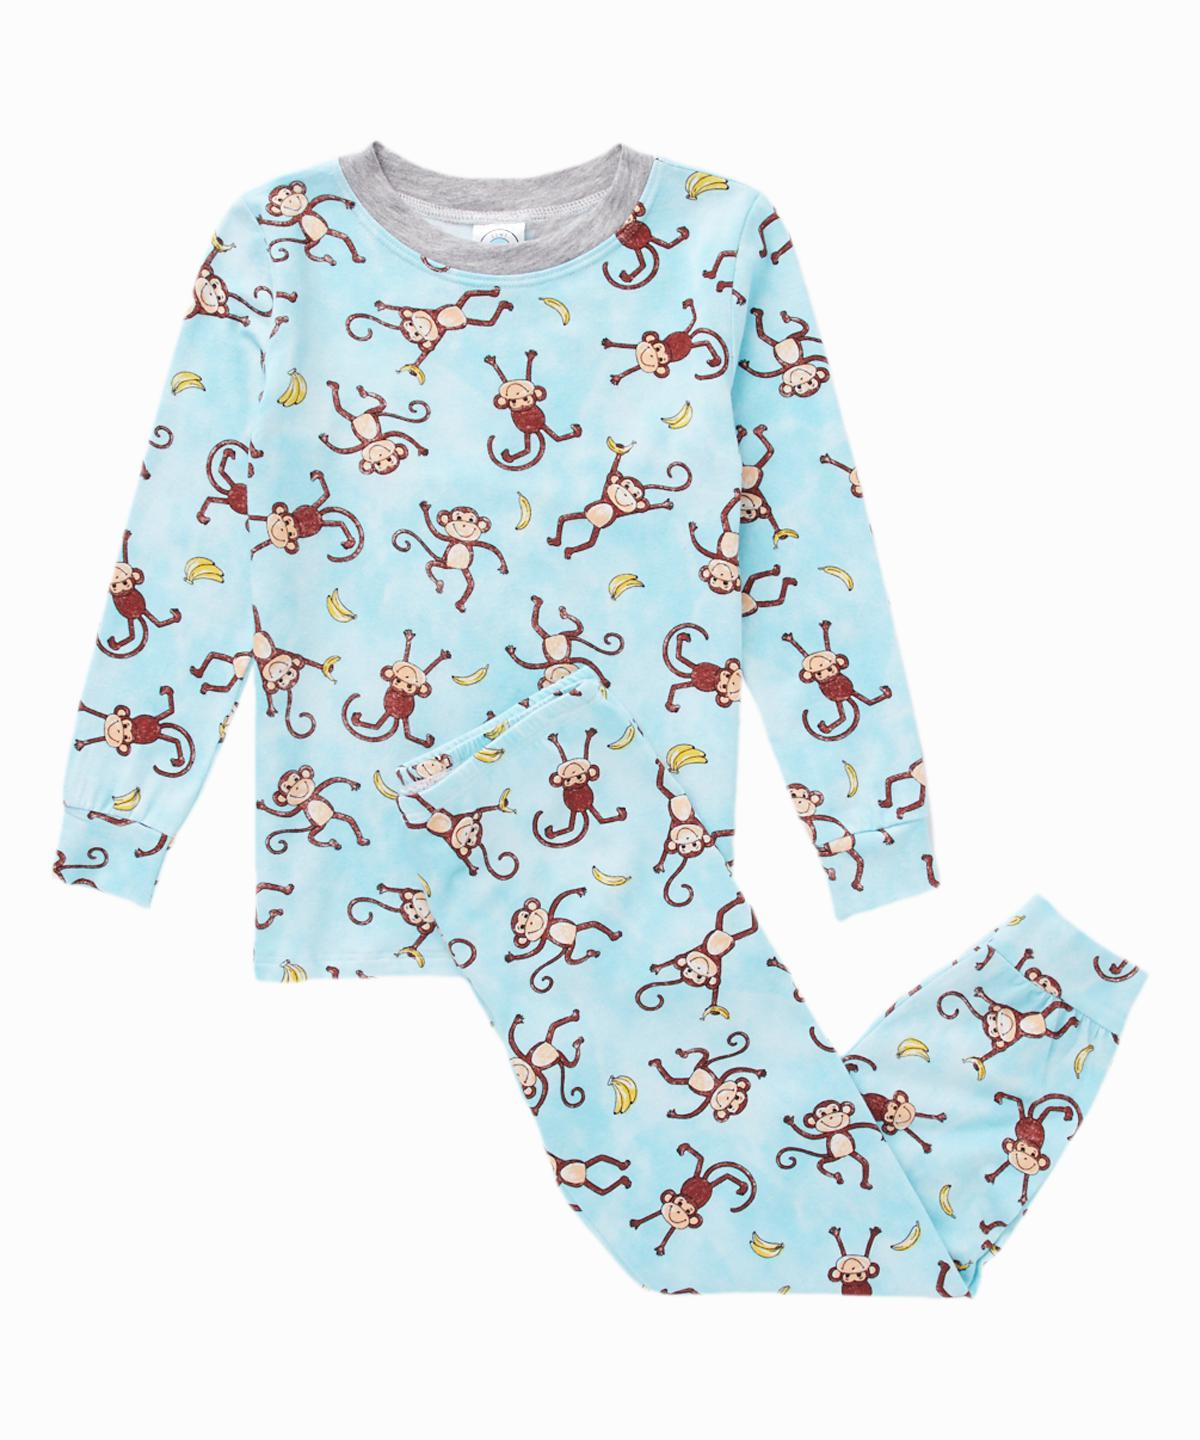 Monkey Print Pants PJ Set